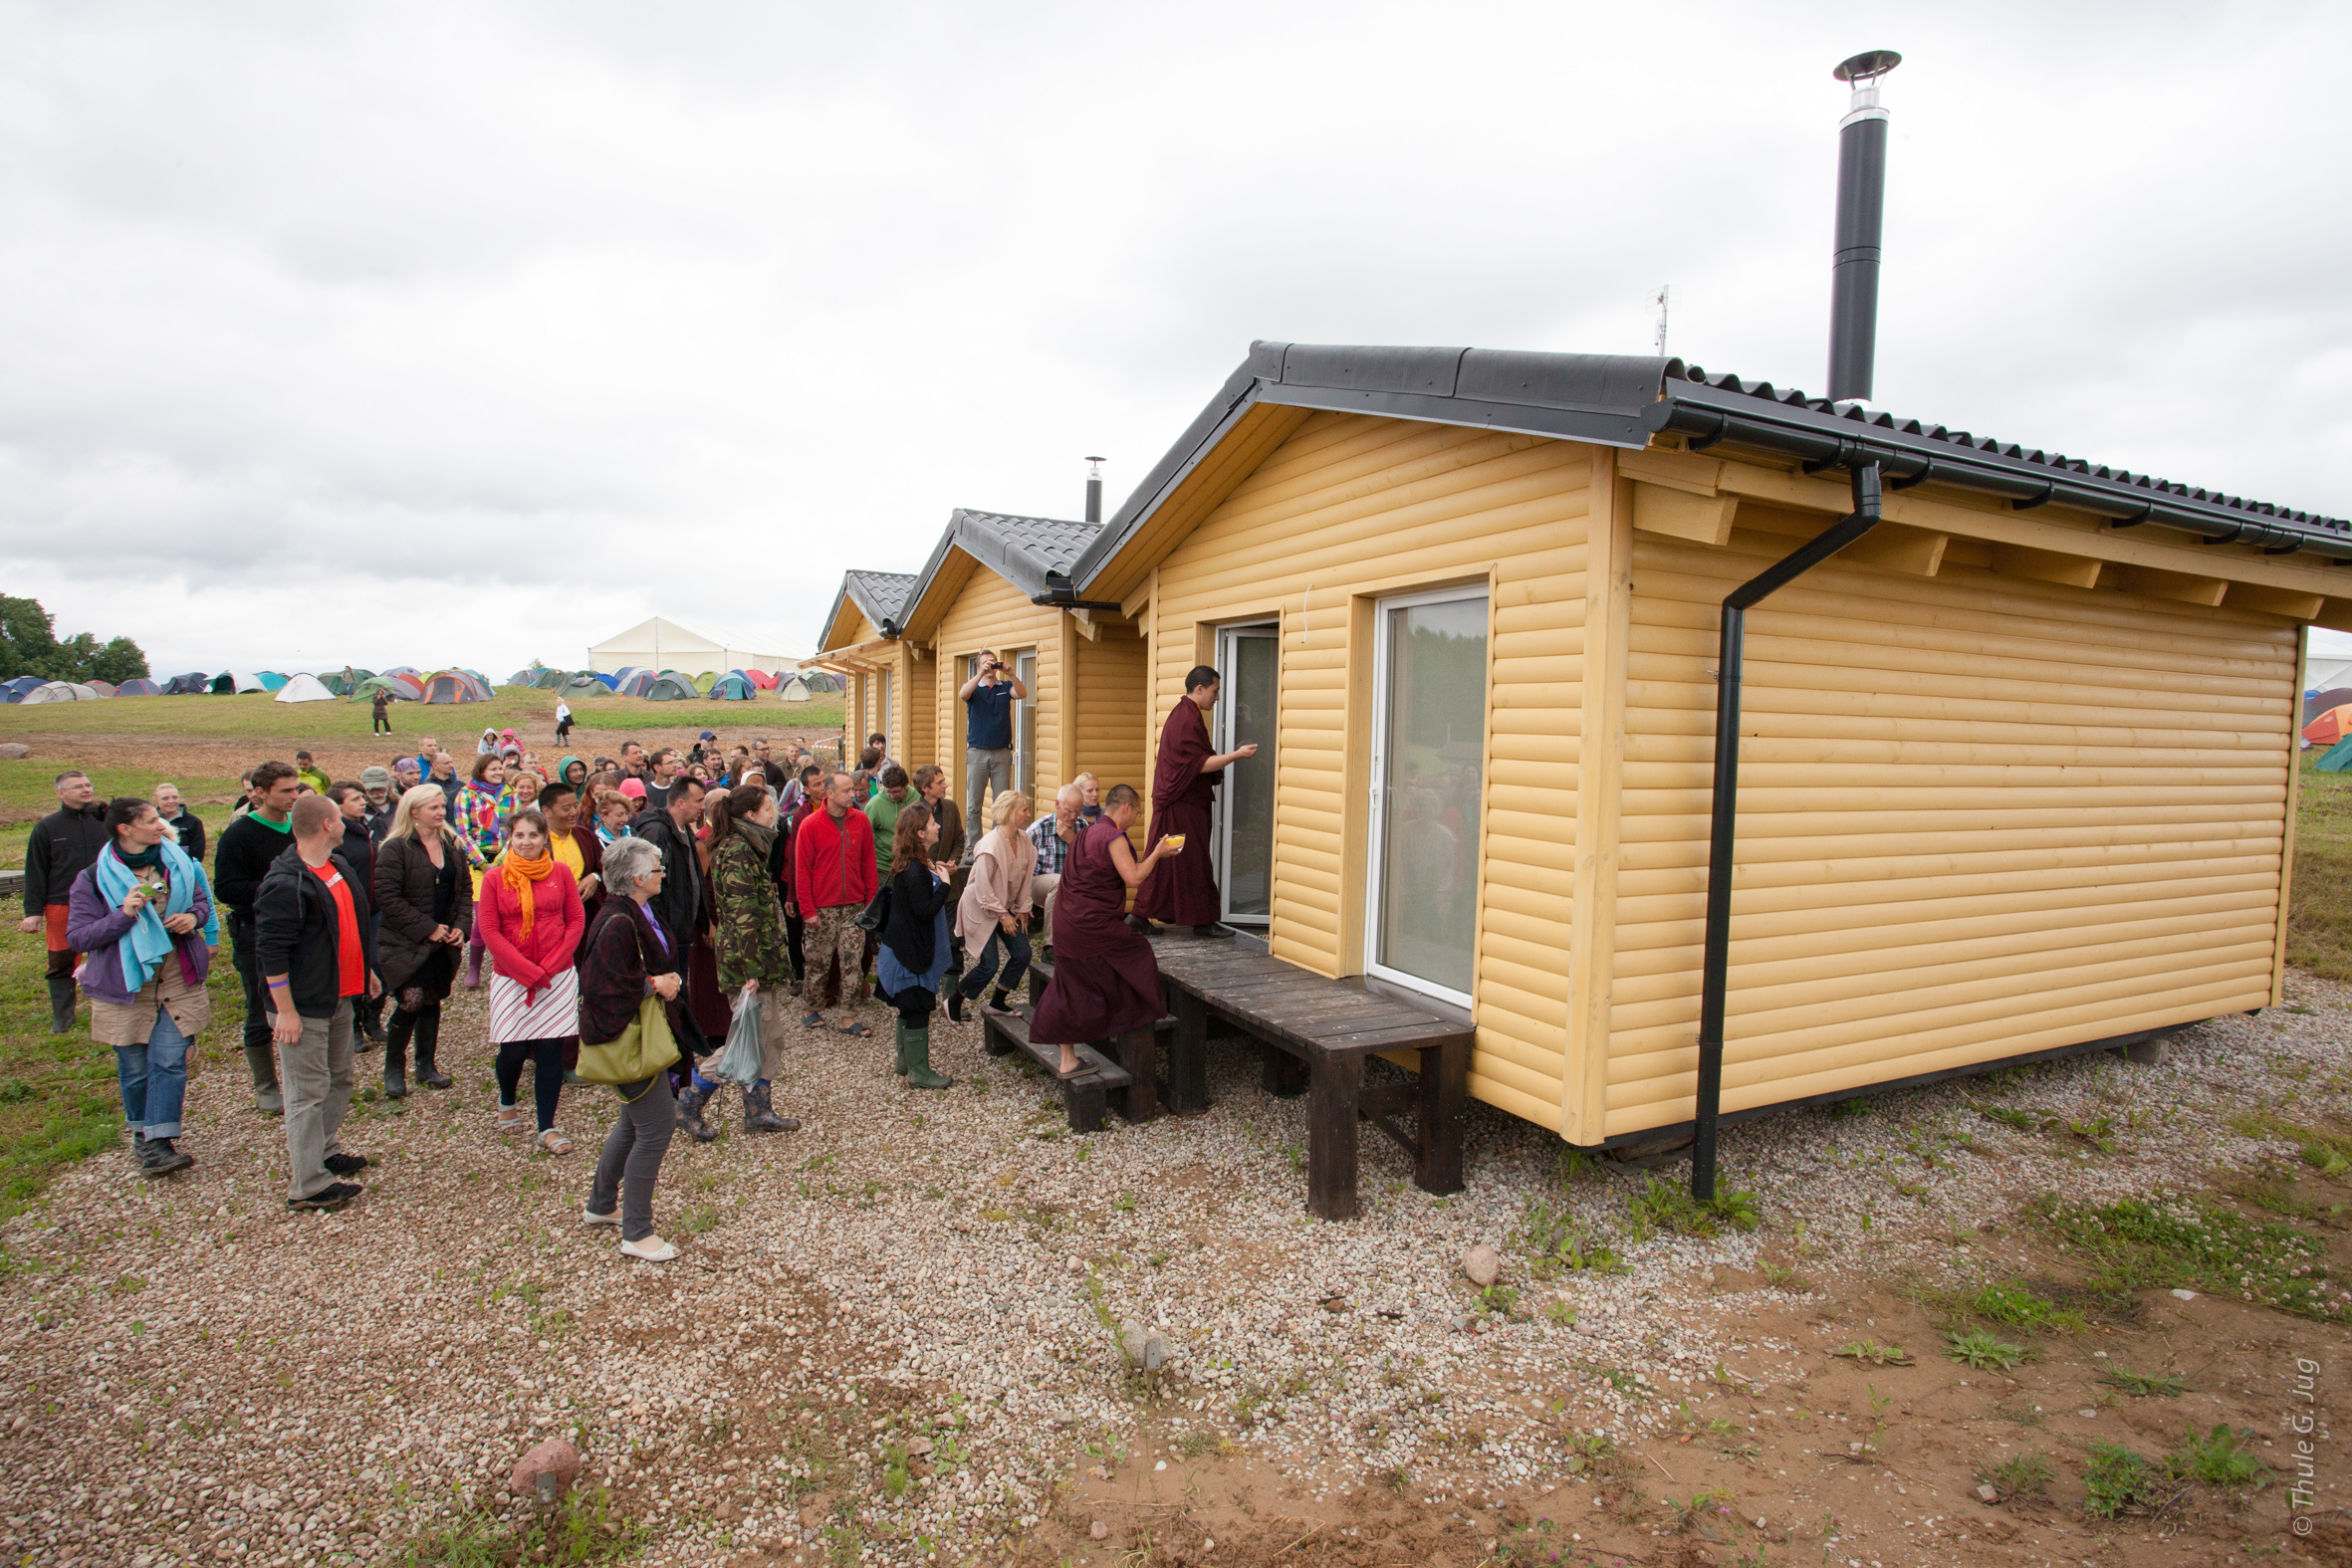 Karmapa in Lithuania: H.H. Gyalwa Karmapa blessing the buildings